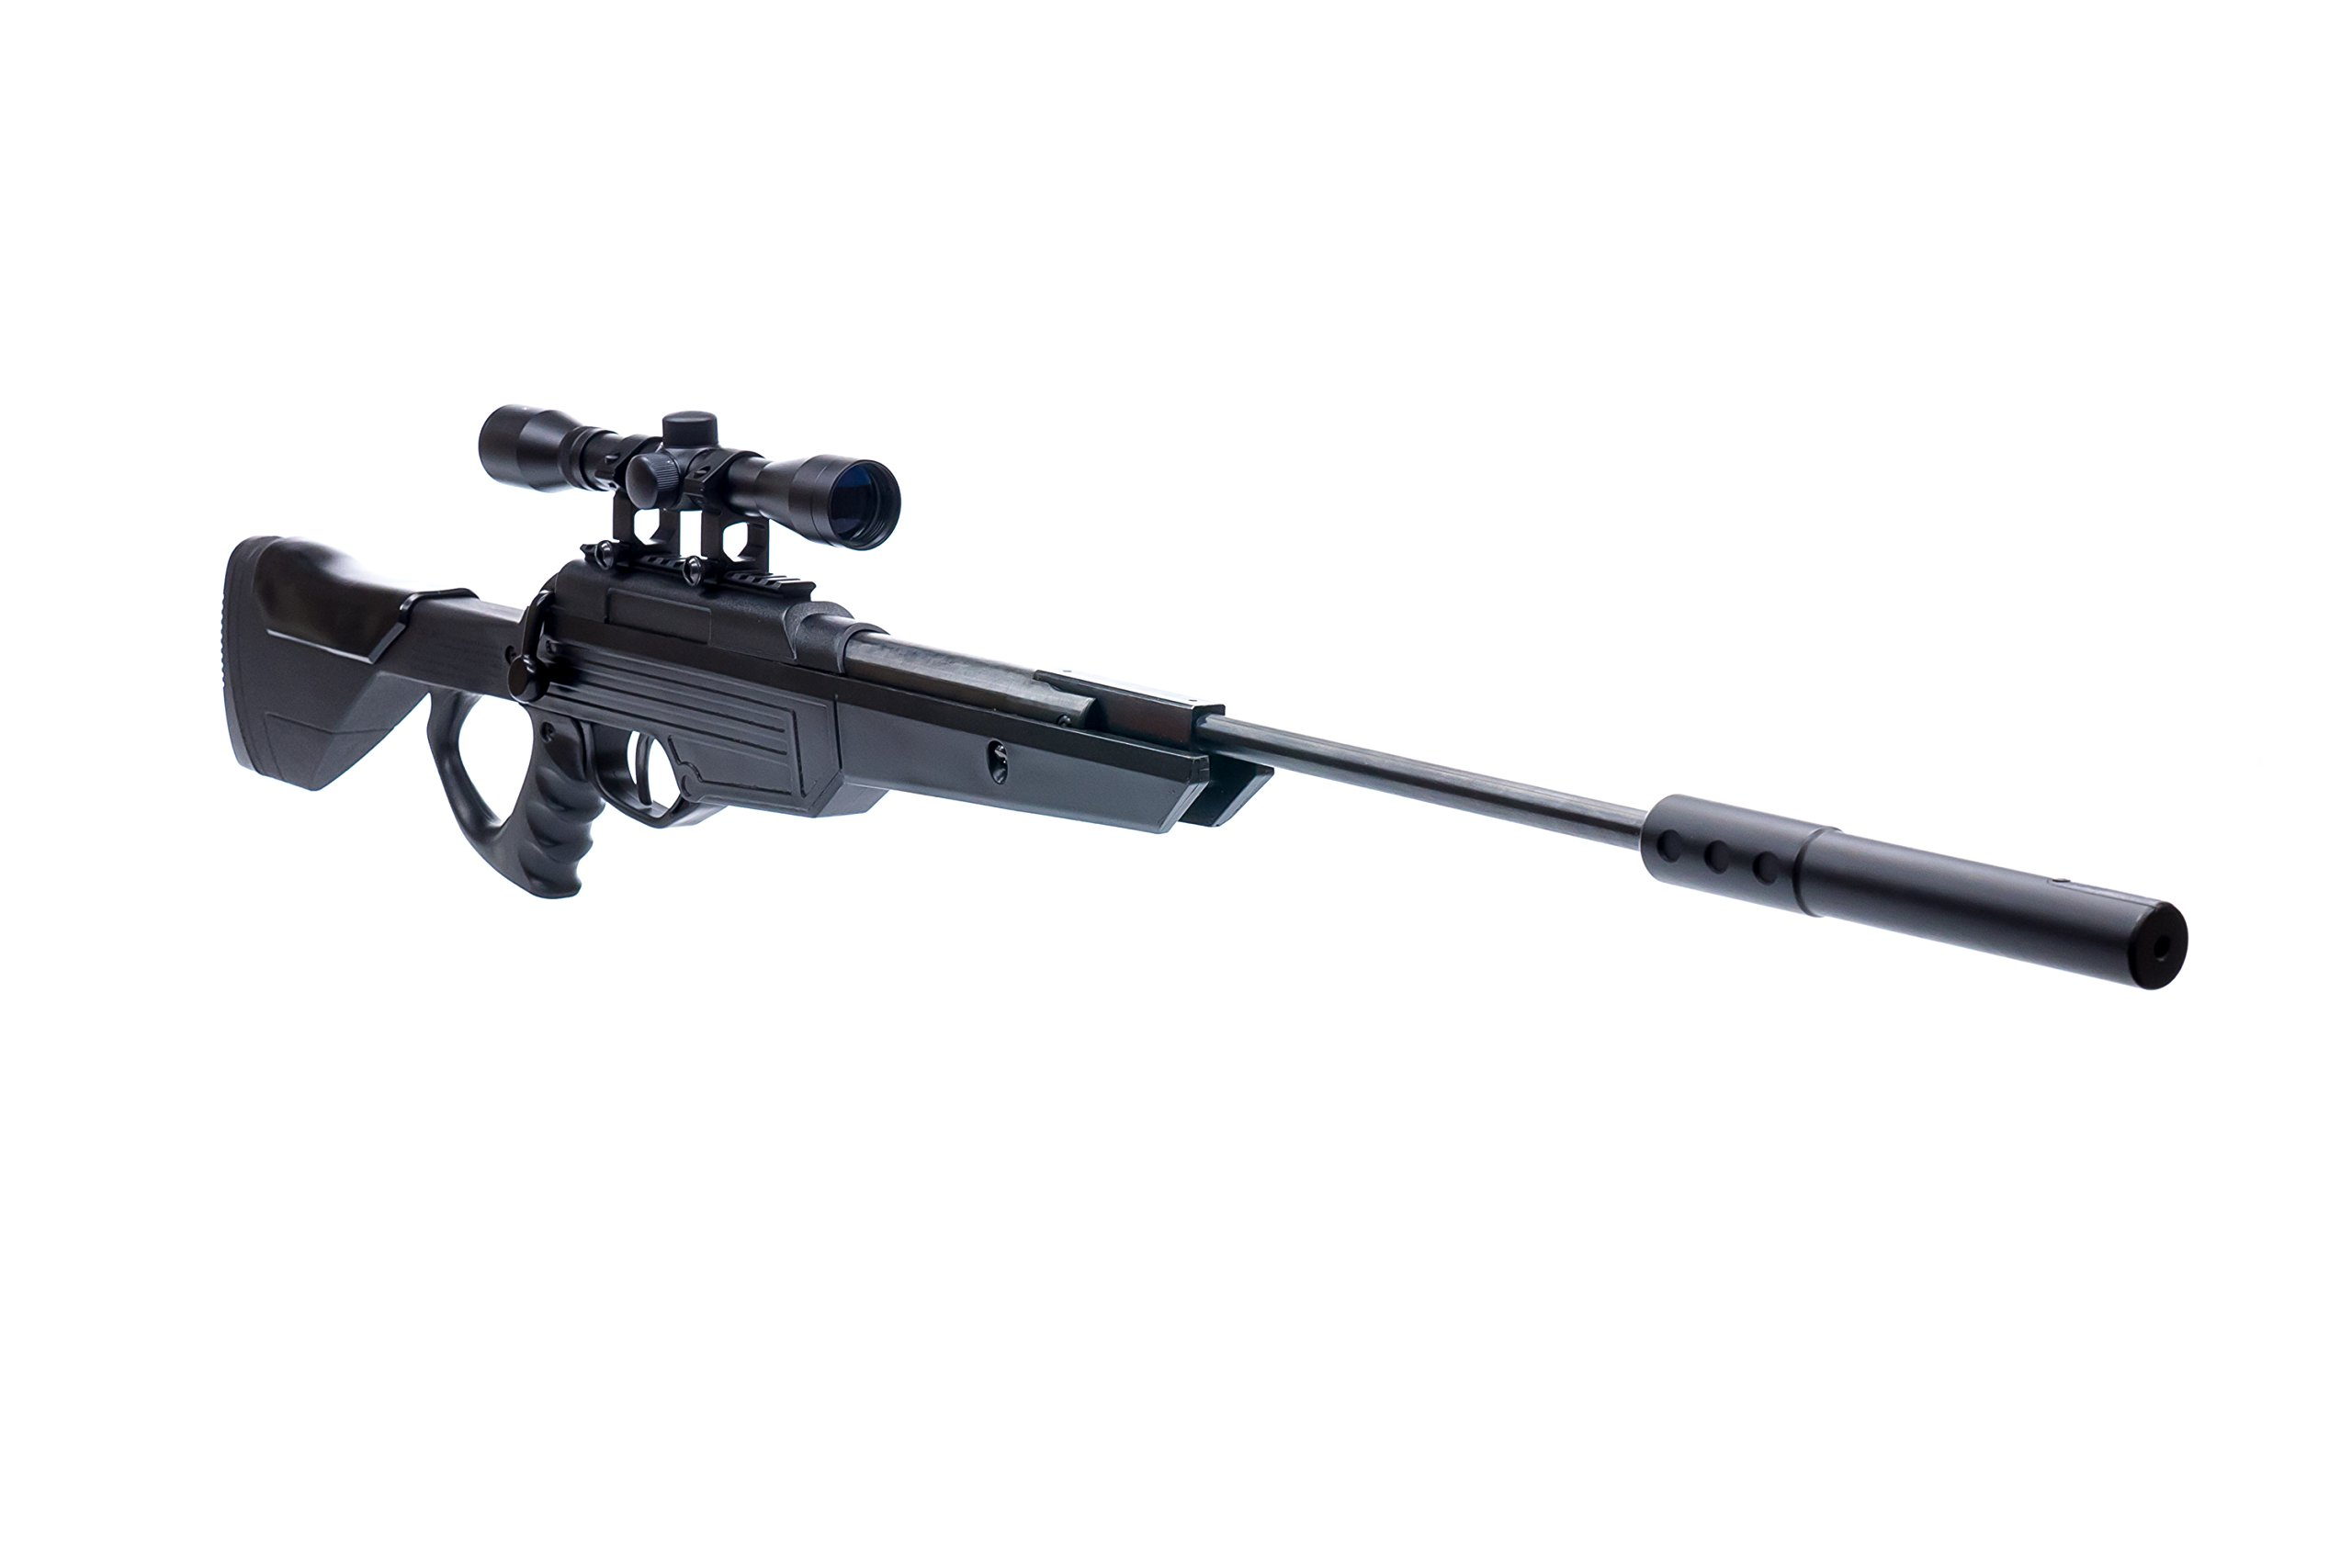 Bear River TPR 1300 Suppressed Hunting Air Rifle - .177 Airgun - Pellet Gun with Scope and Silencer Included by Bear River